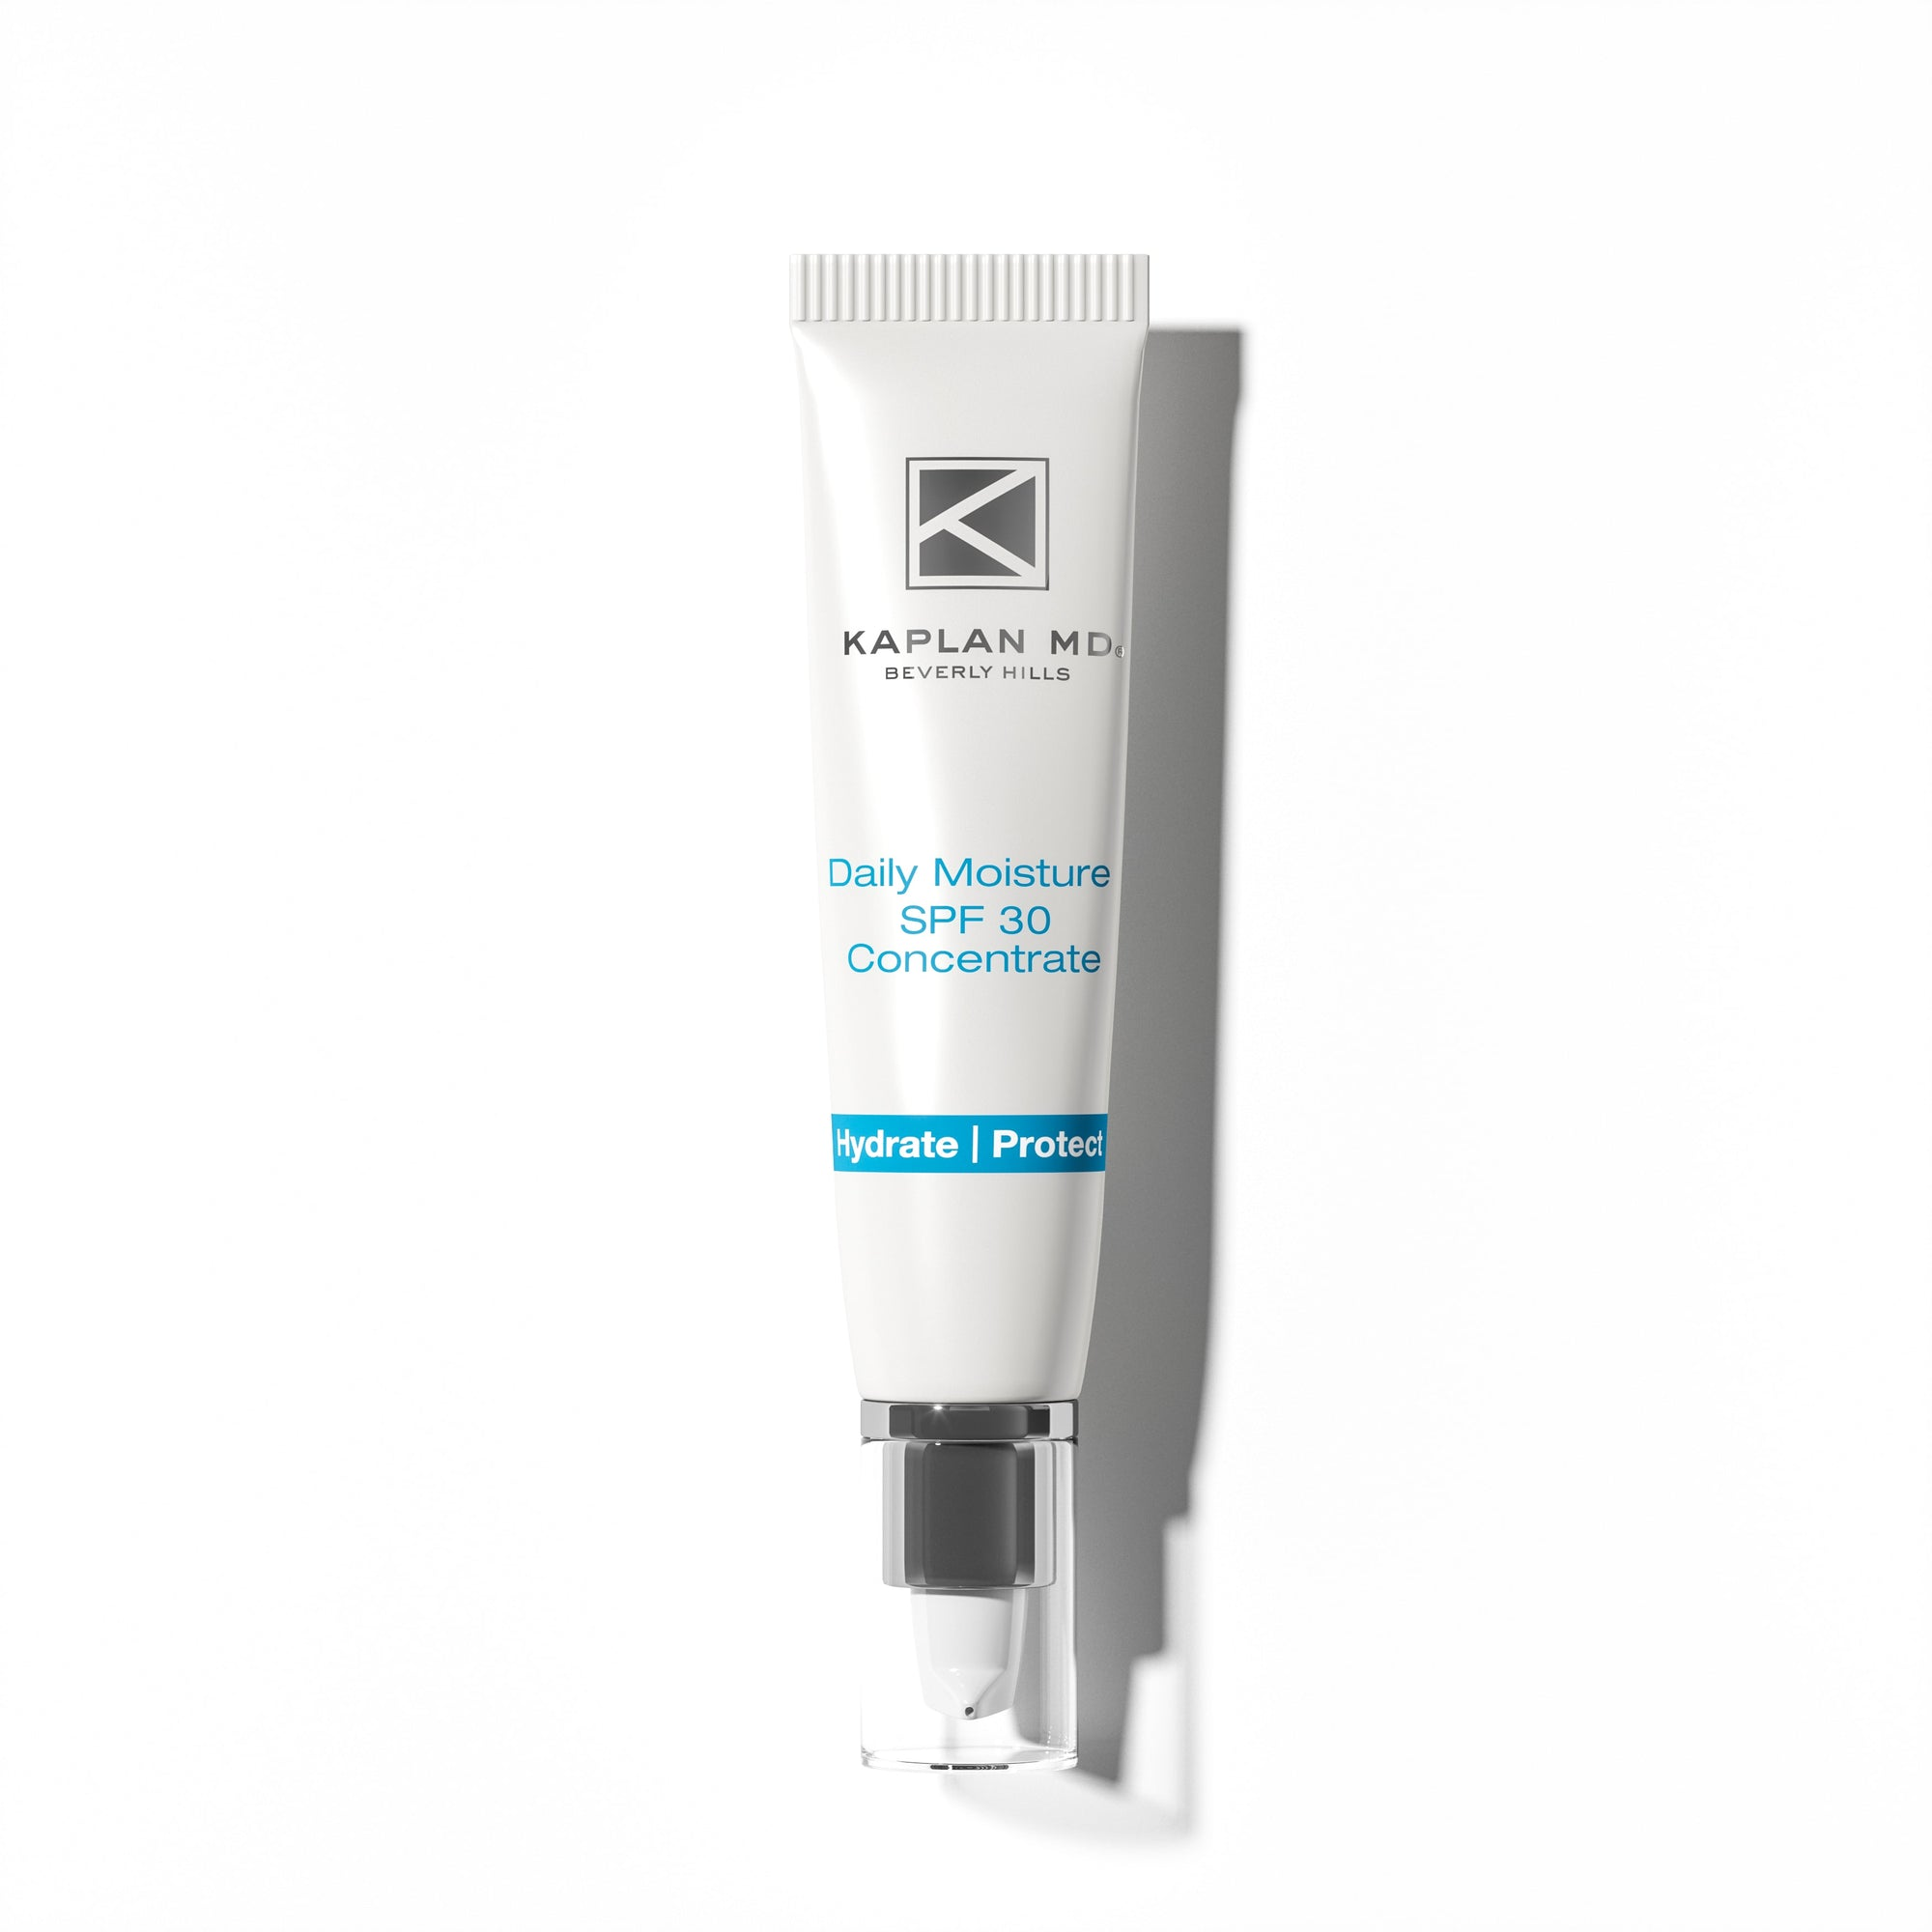 DAILY MOISTURE SPF 30 CONCENTRATE DELUXE MINI